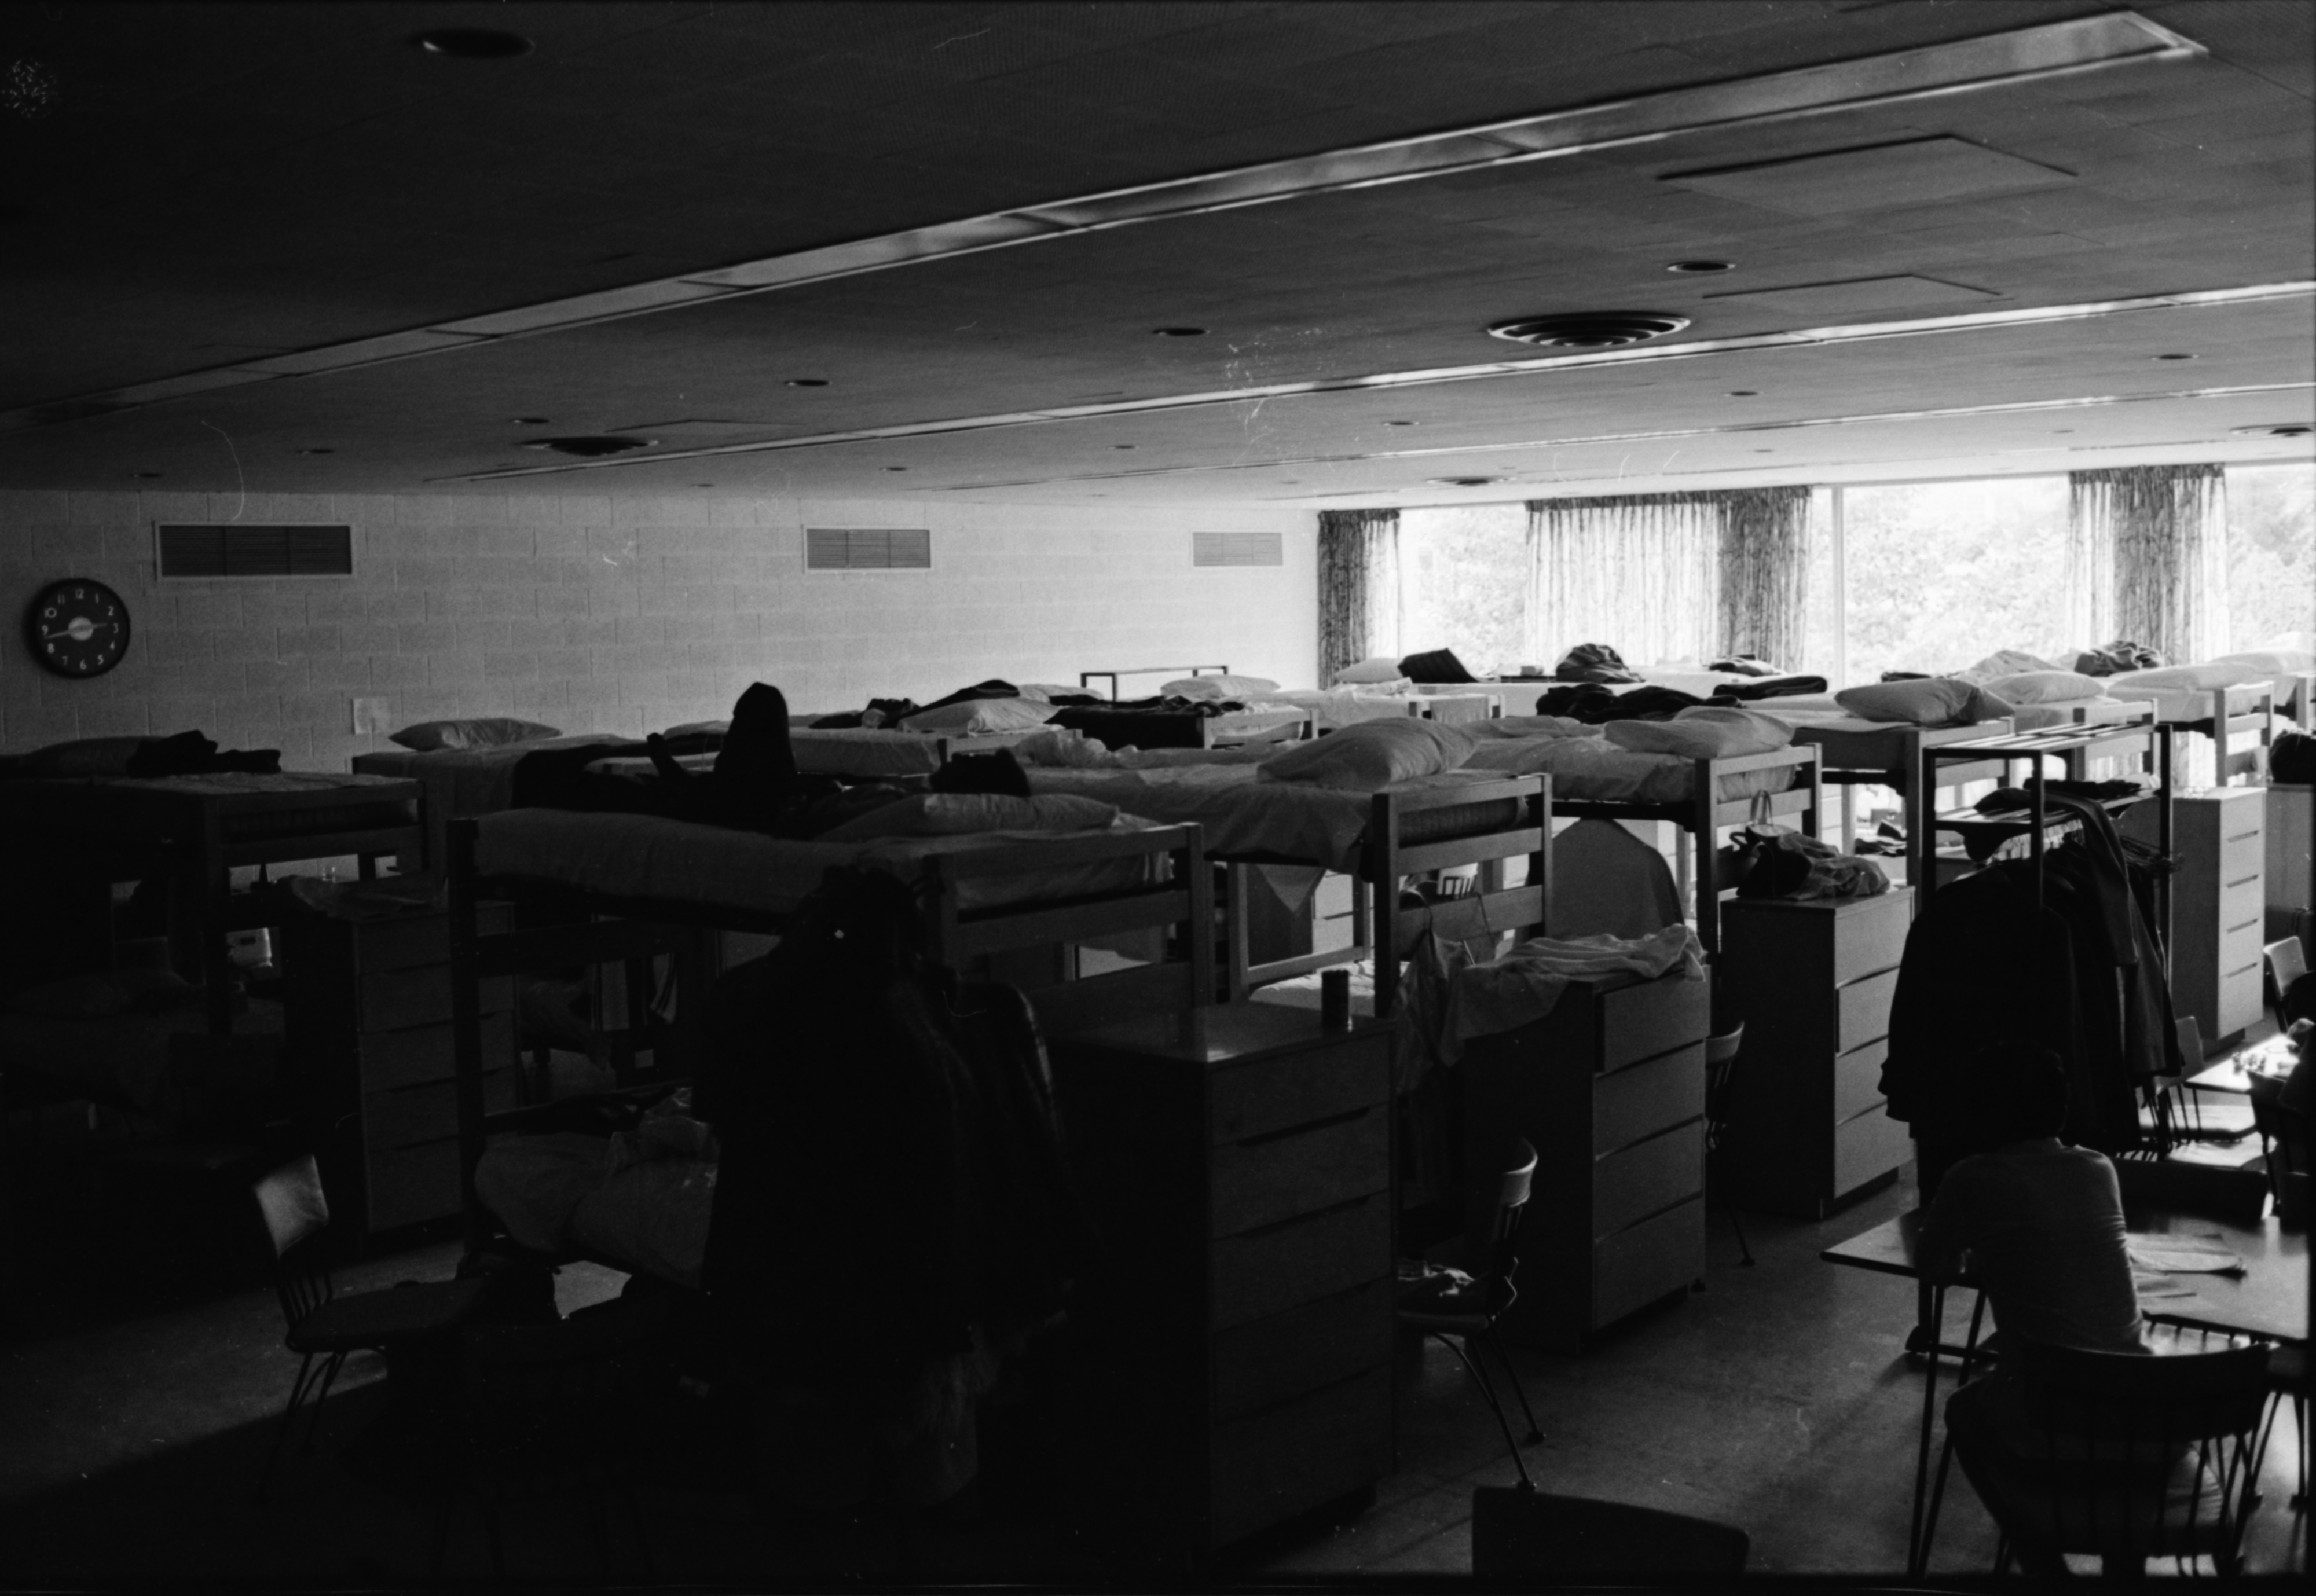 Students Stay in Markley Hall Dining Room Due to Overcrowding, September 1969 image